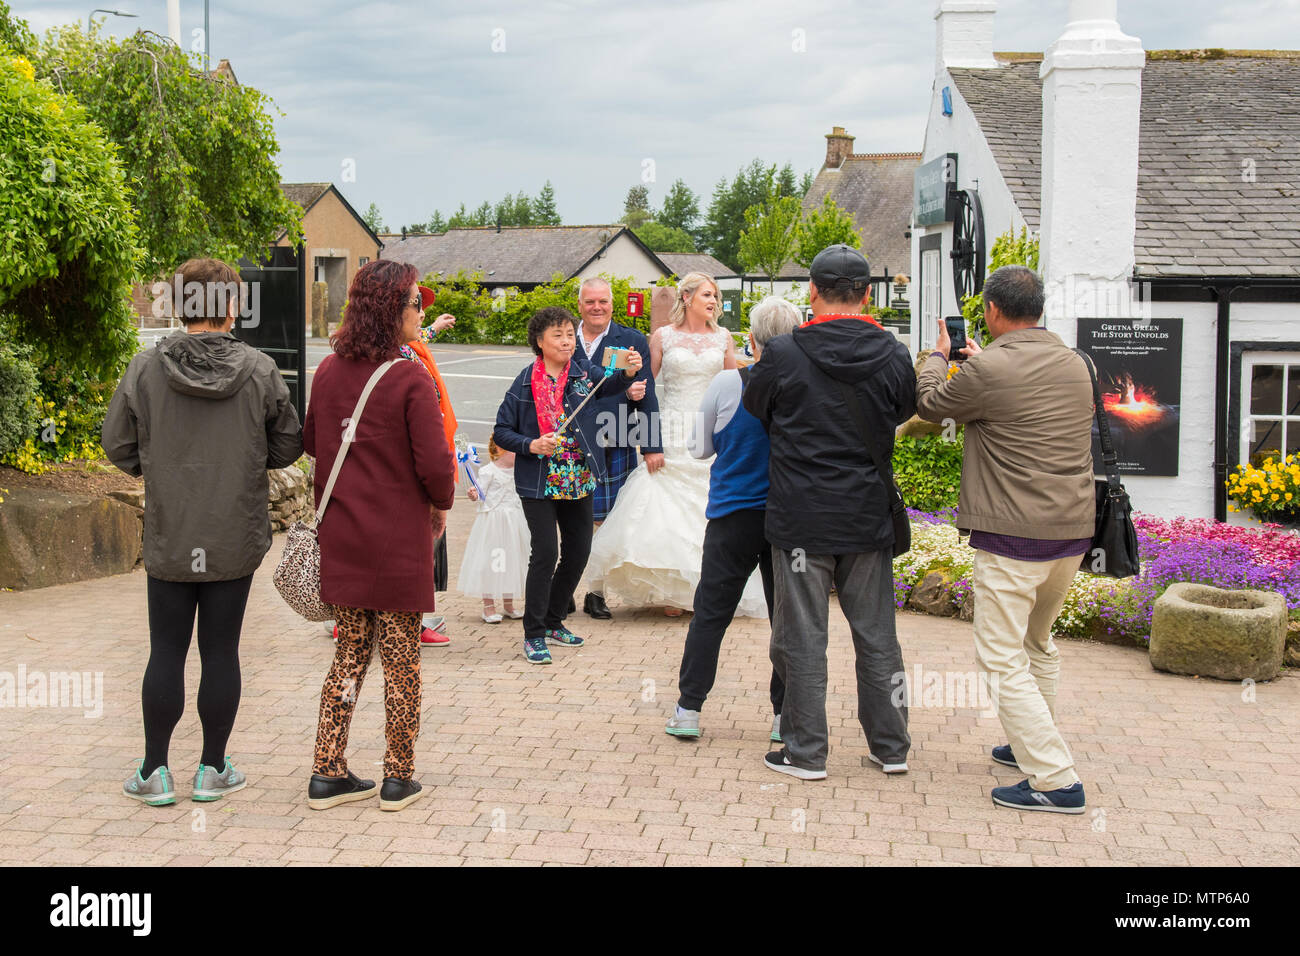 Asian tourists taking selfies and photographs of a bride arriving for her wedding at Gretna Green, Scotland, UK - Stock Image